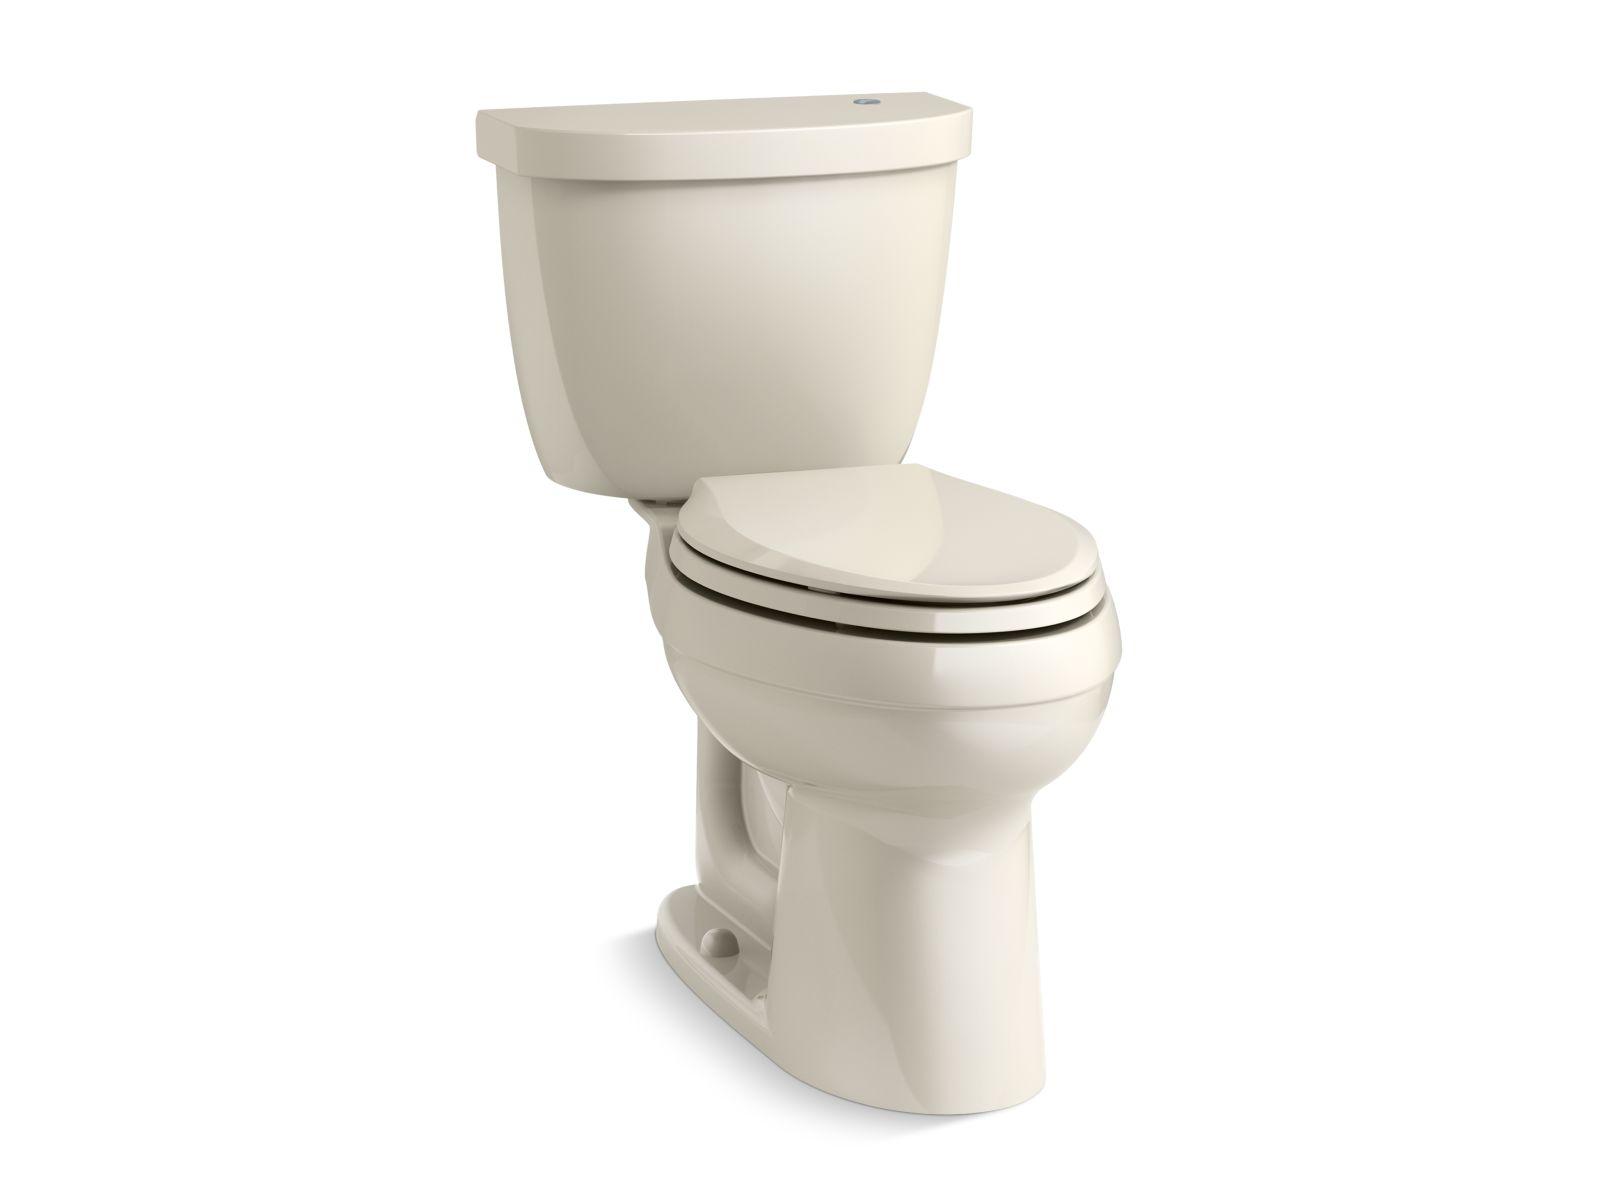 Kohler Cimarron® K-6418-47 Touchless Comfort Height® two-piece elongated 1.28 gpf toilet with AquaPiston® flushing technology Almond